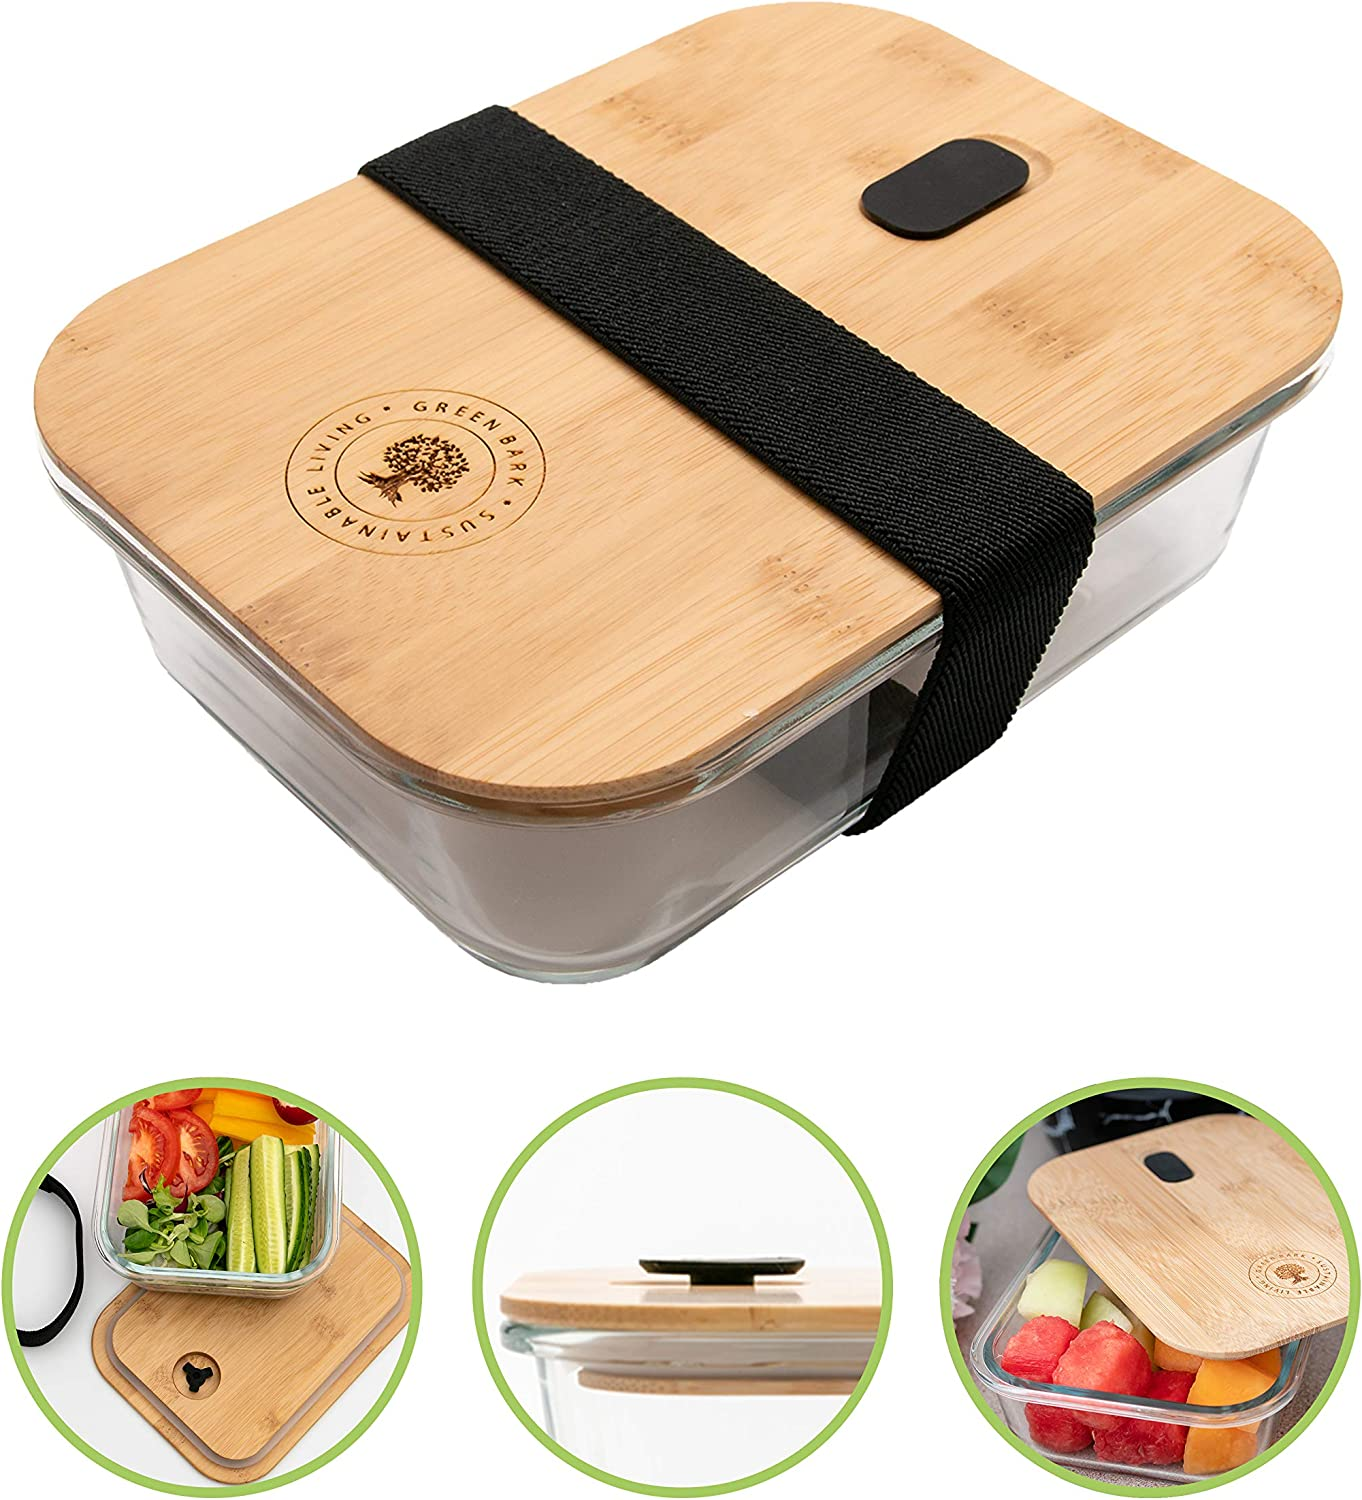 Plastic-Free Glass Food Containers with innovative design (leak-proof) and elastic strap, Glass Food Containers with Eco-Friendly Bamboo Lids, Glass Meal Prep Containers, Glass Bento, Lunch Container